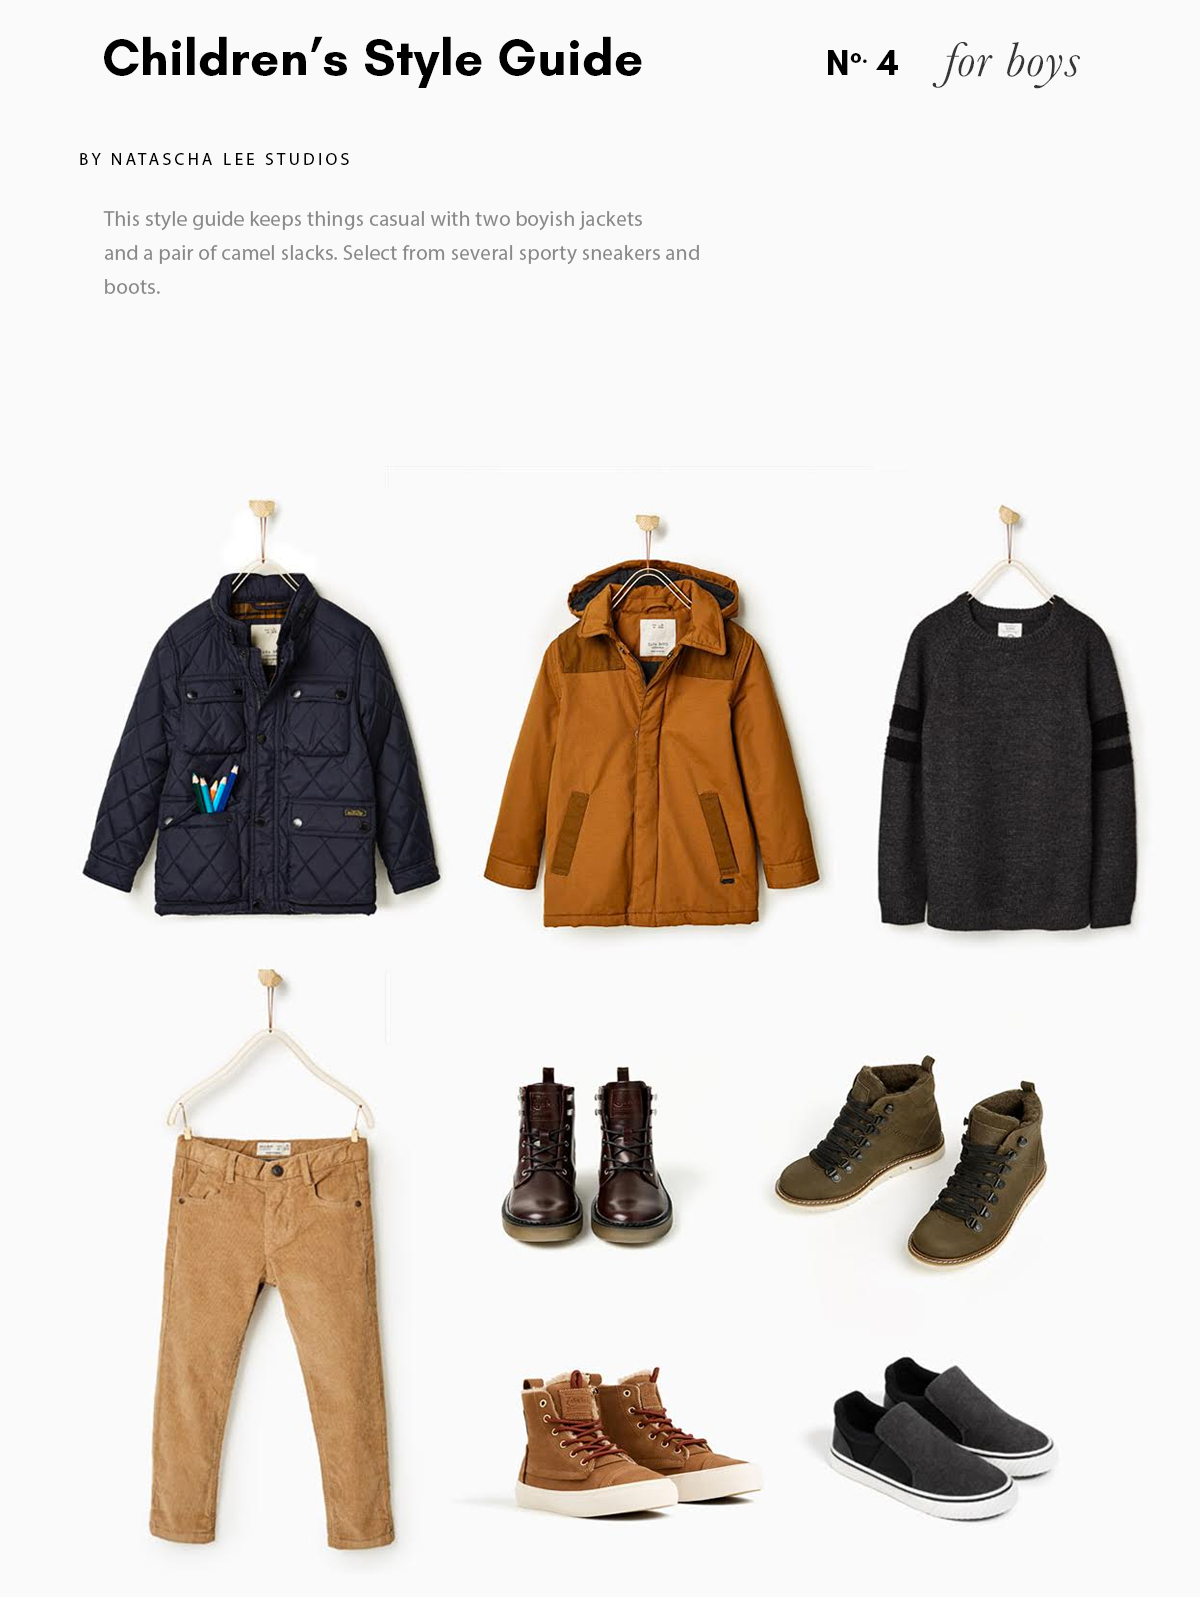 Boy's Style Guide No 4 – 6